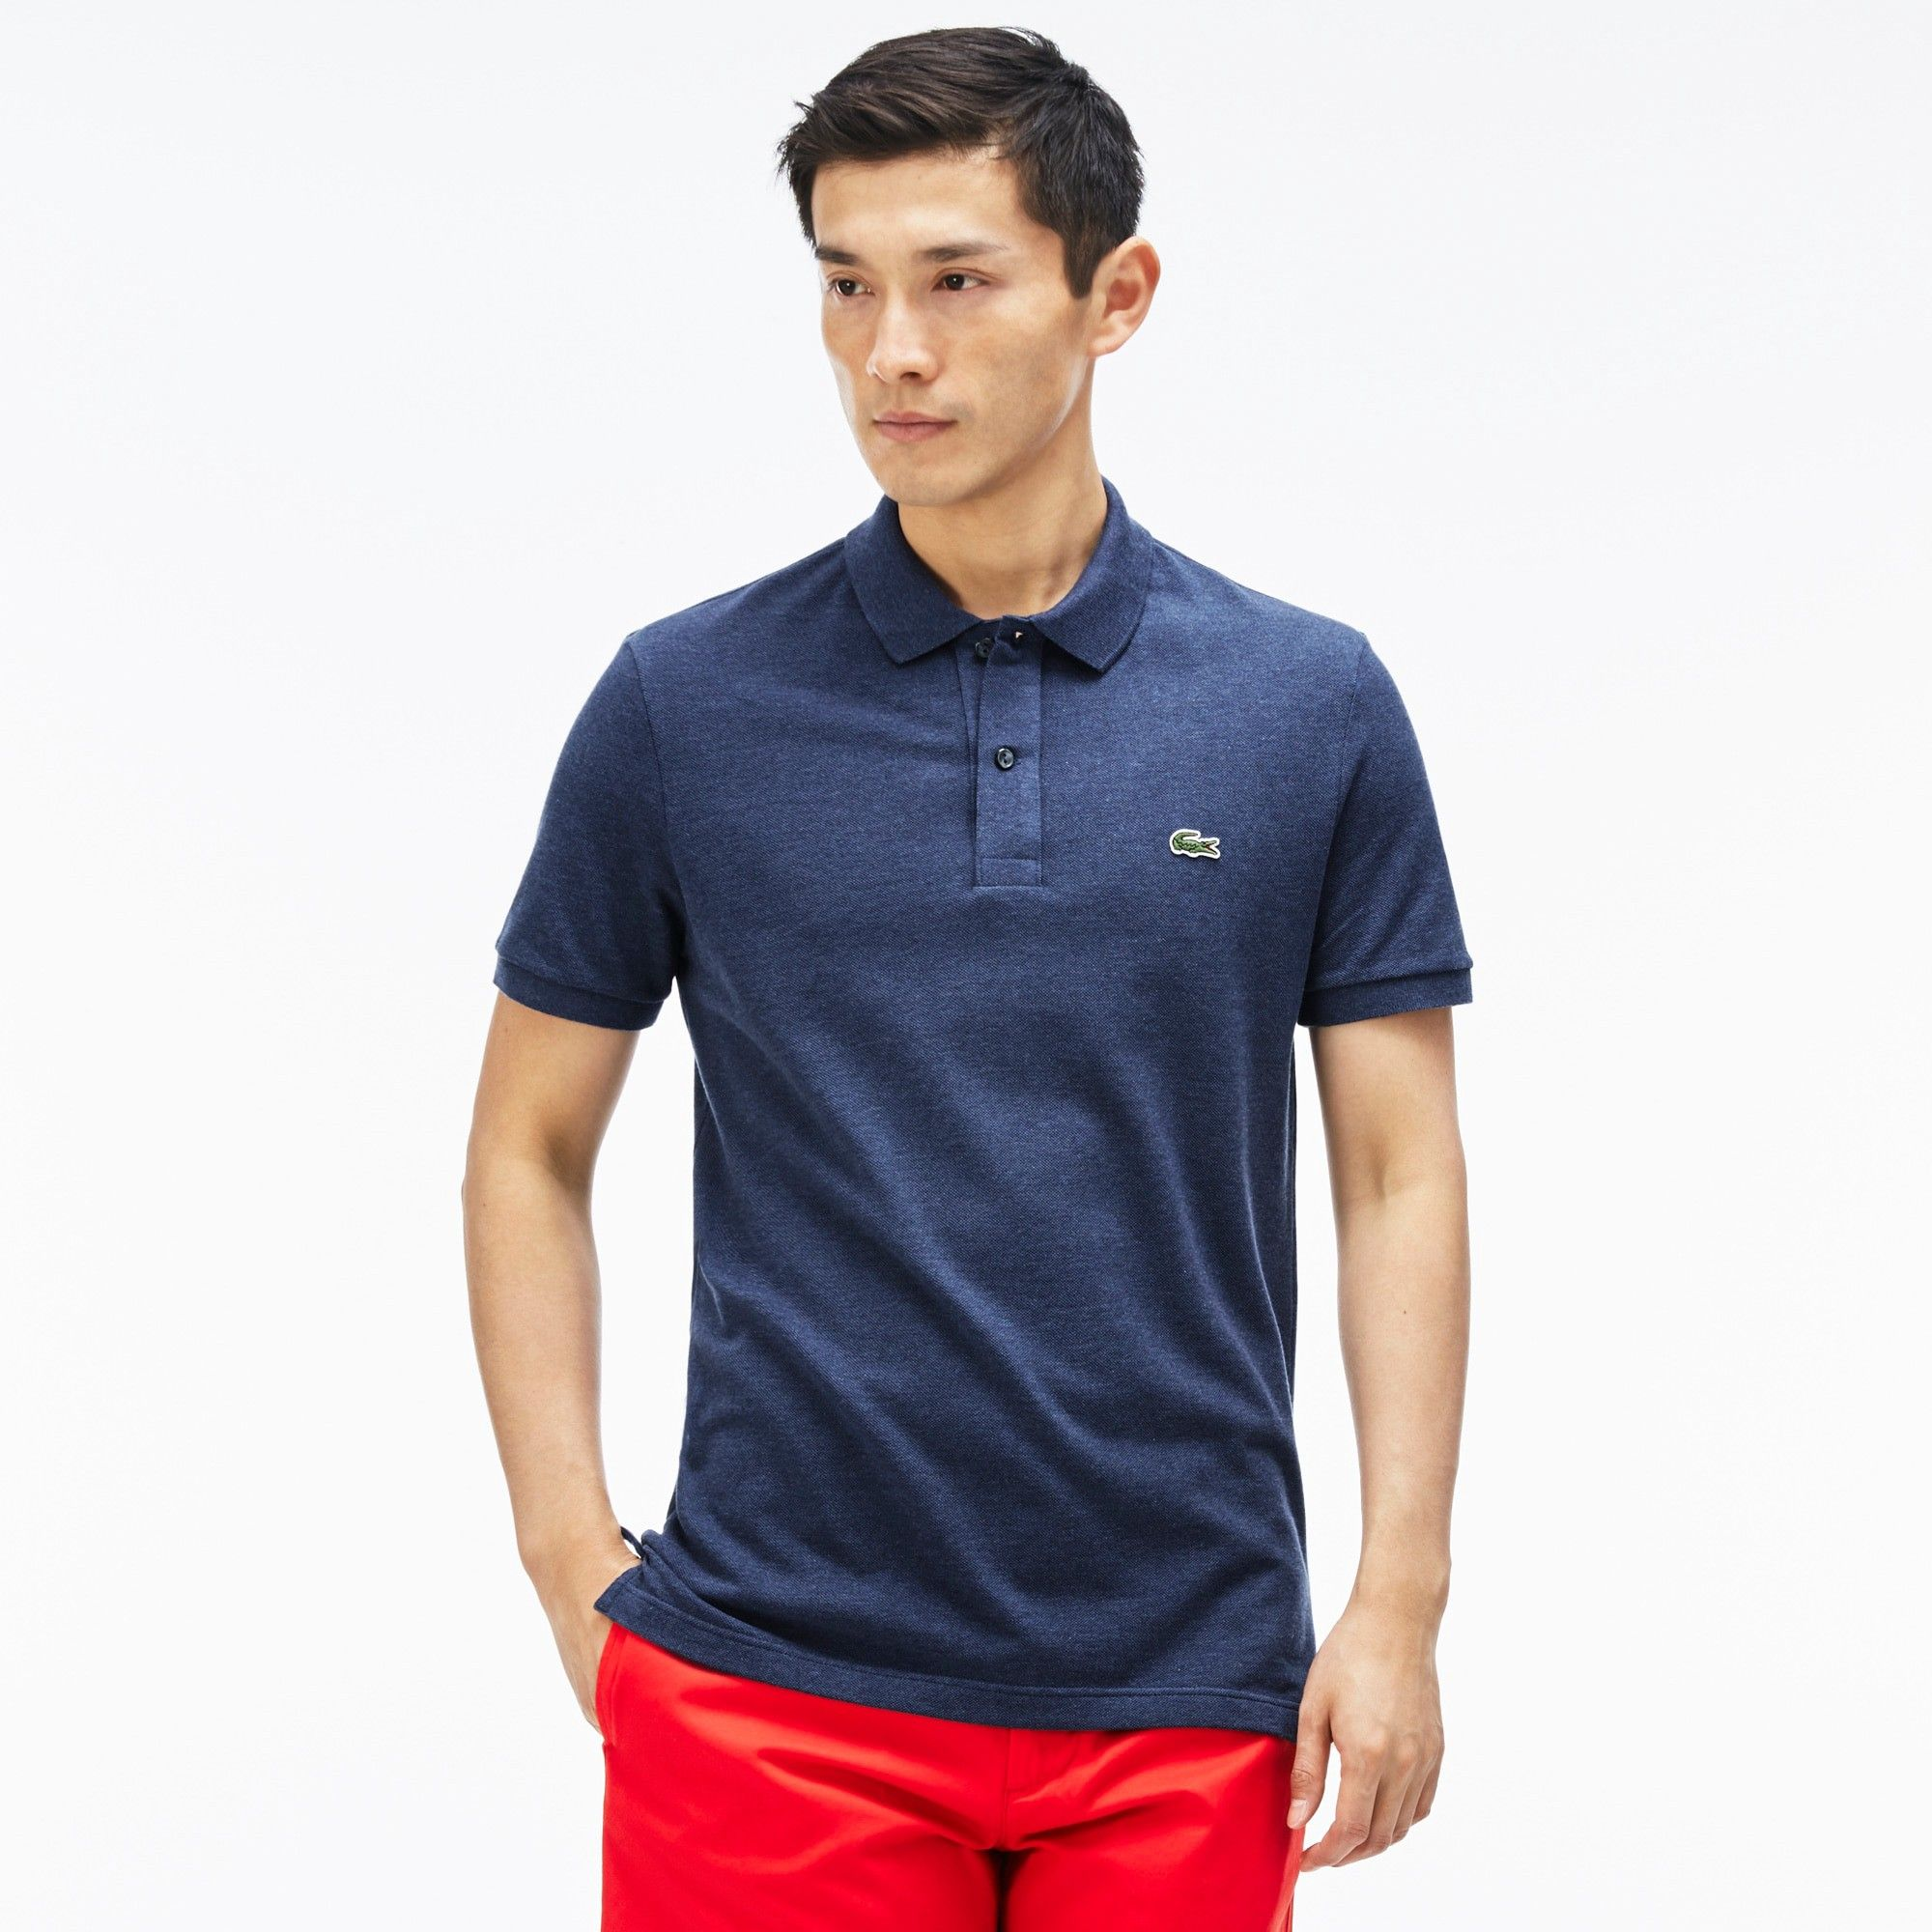 be0f5d3a8 LACOSTE Men's Slim Fit Petit Piqué Polo Shirt - philippines blue chine. # lacoste #cloth #